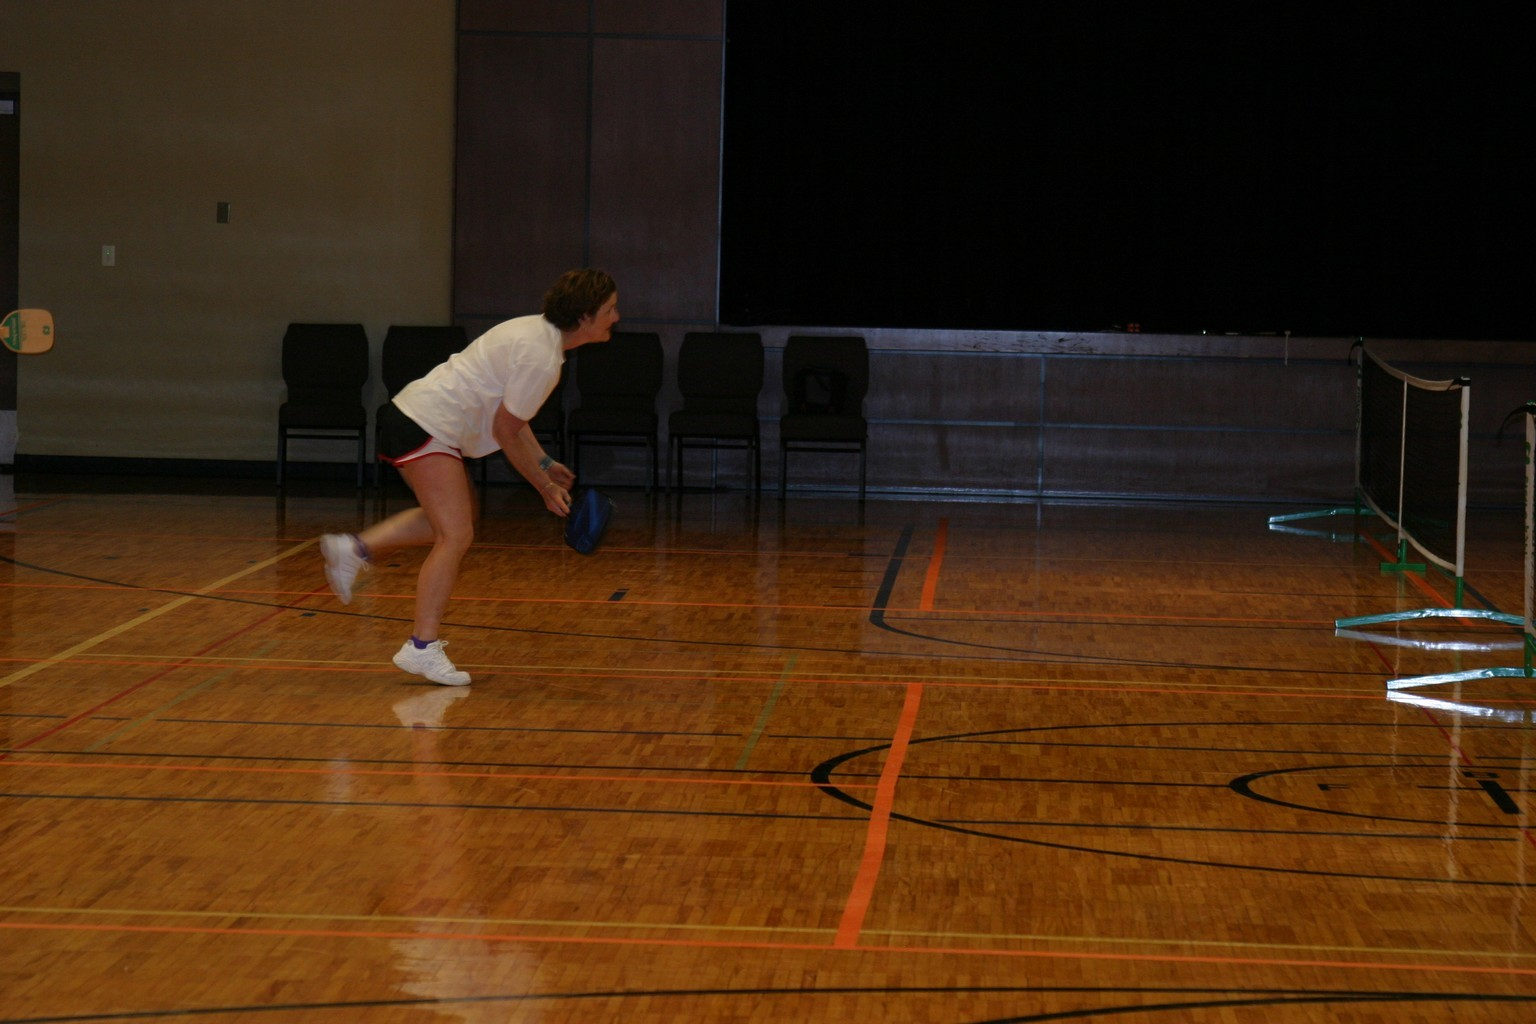 alabama pickleball, trussville pickleball, birmingham pickleball, pickleball, family pickleball, first baptist church trussville, pickleball demonstration